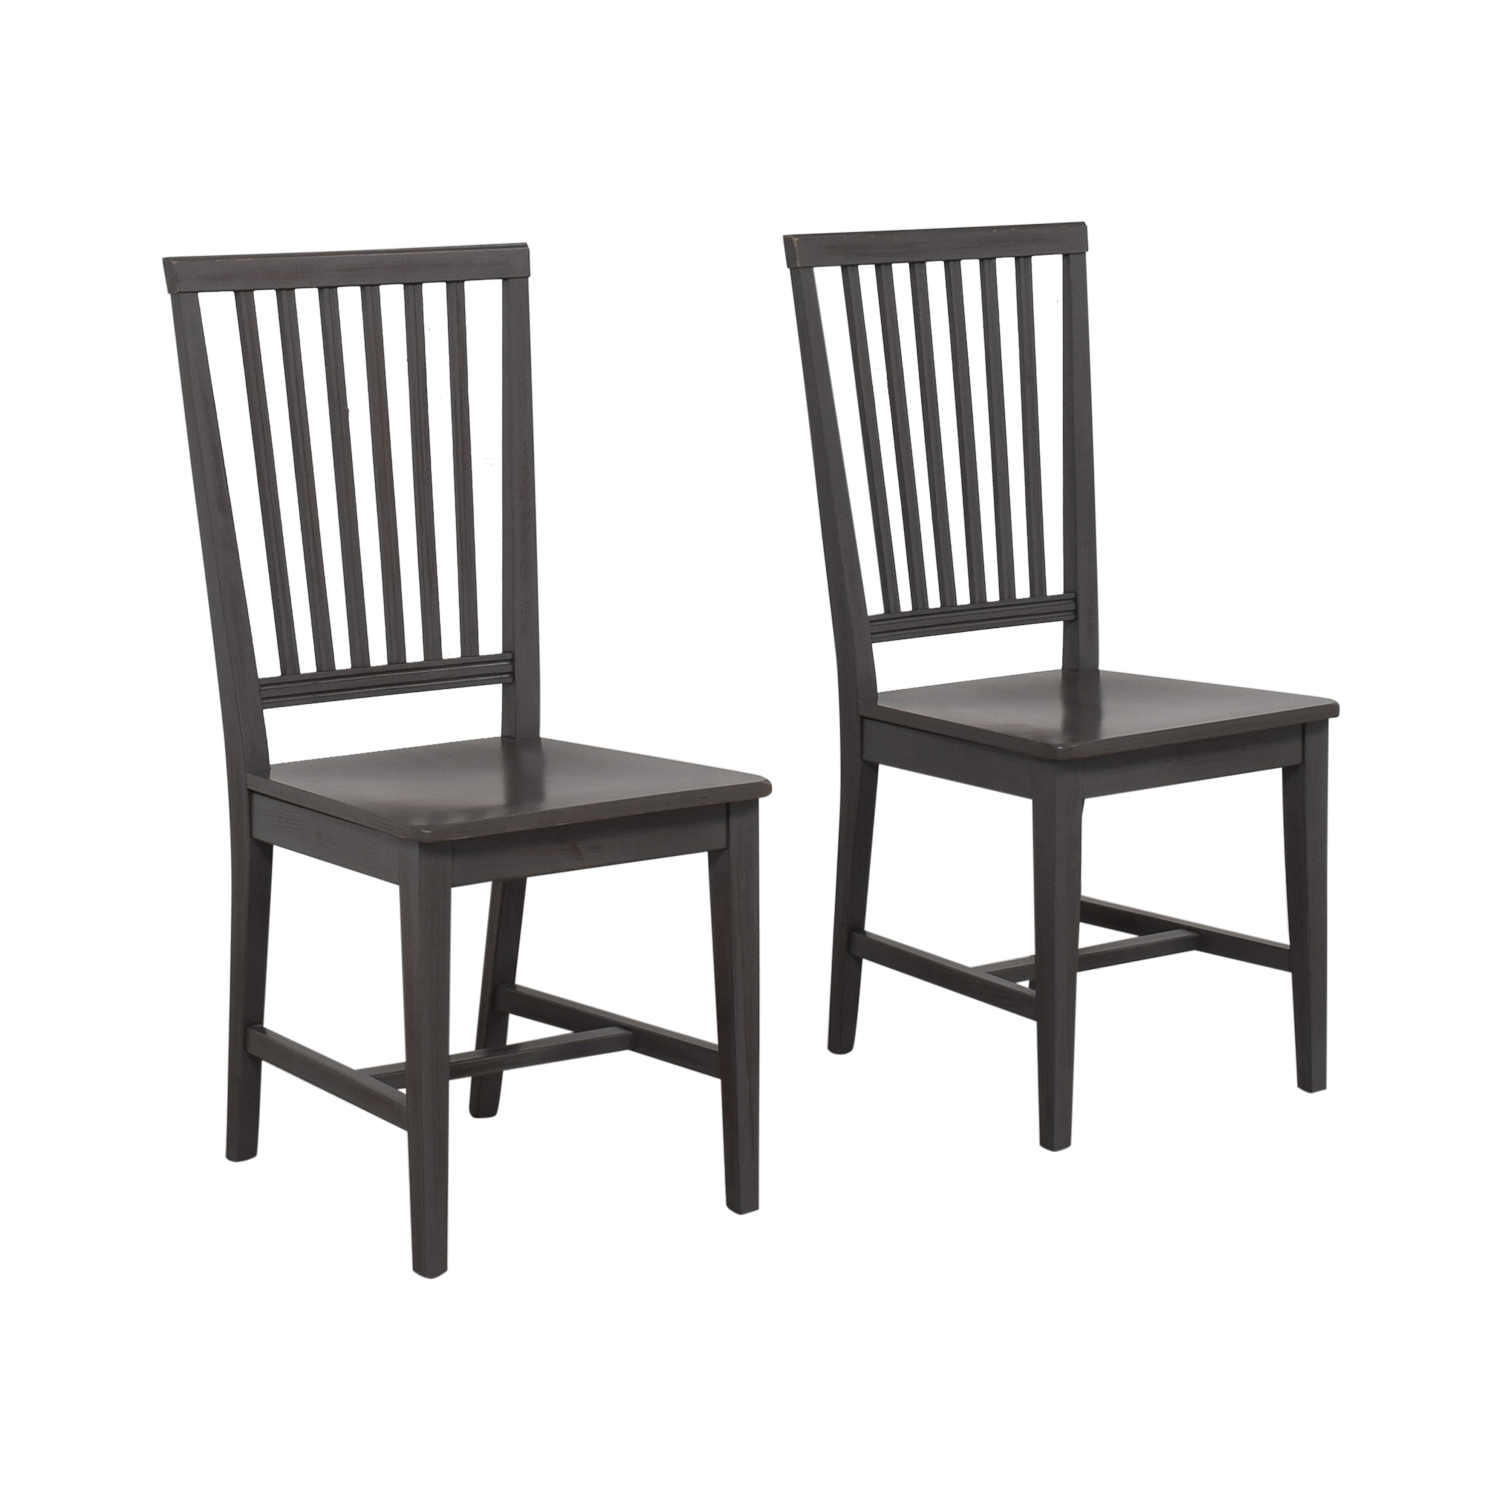 shop Crate & Barrel by Buying & Design Village Side Chair Grigio Crate & Barrel Dining Chairs